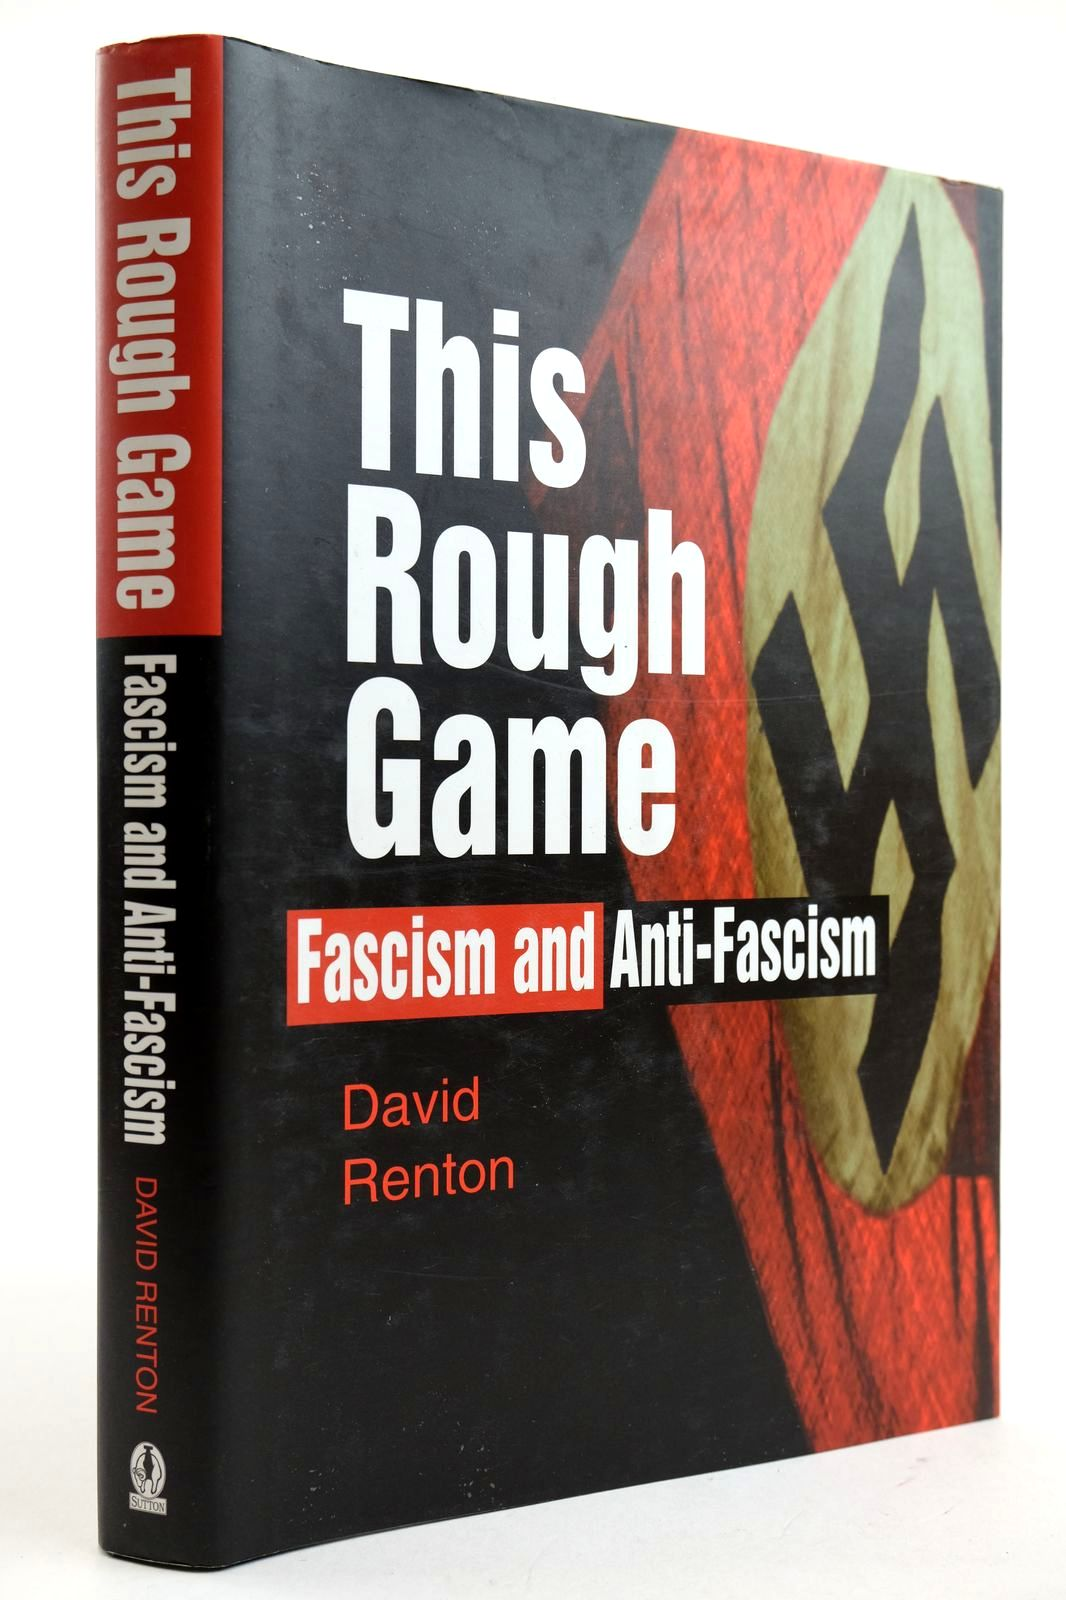 Photo of THIS ROUGH GAME FASCISM AND ANIT-FASCISM- Stock Number: 2132646